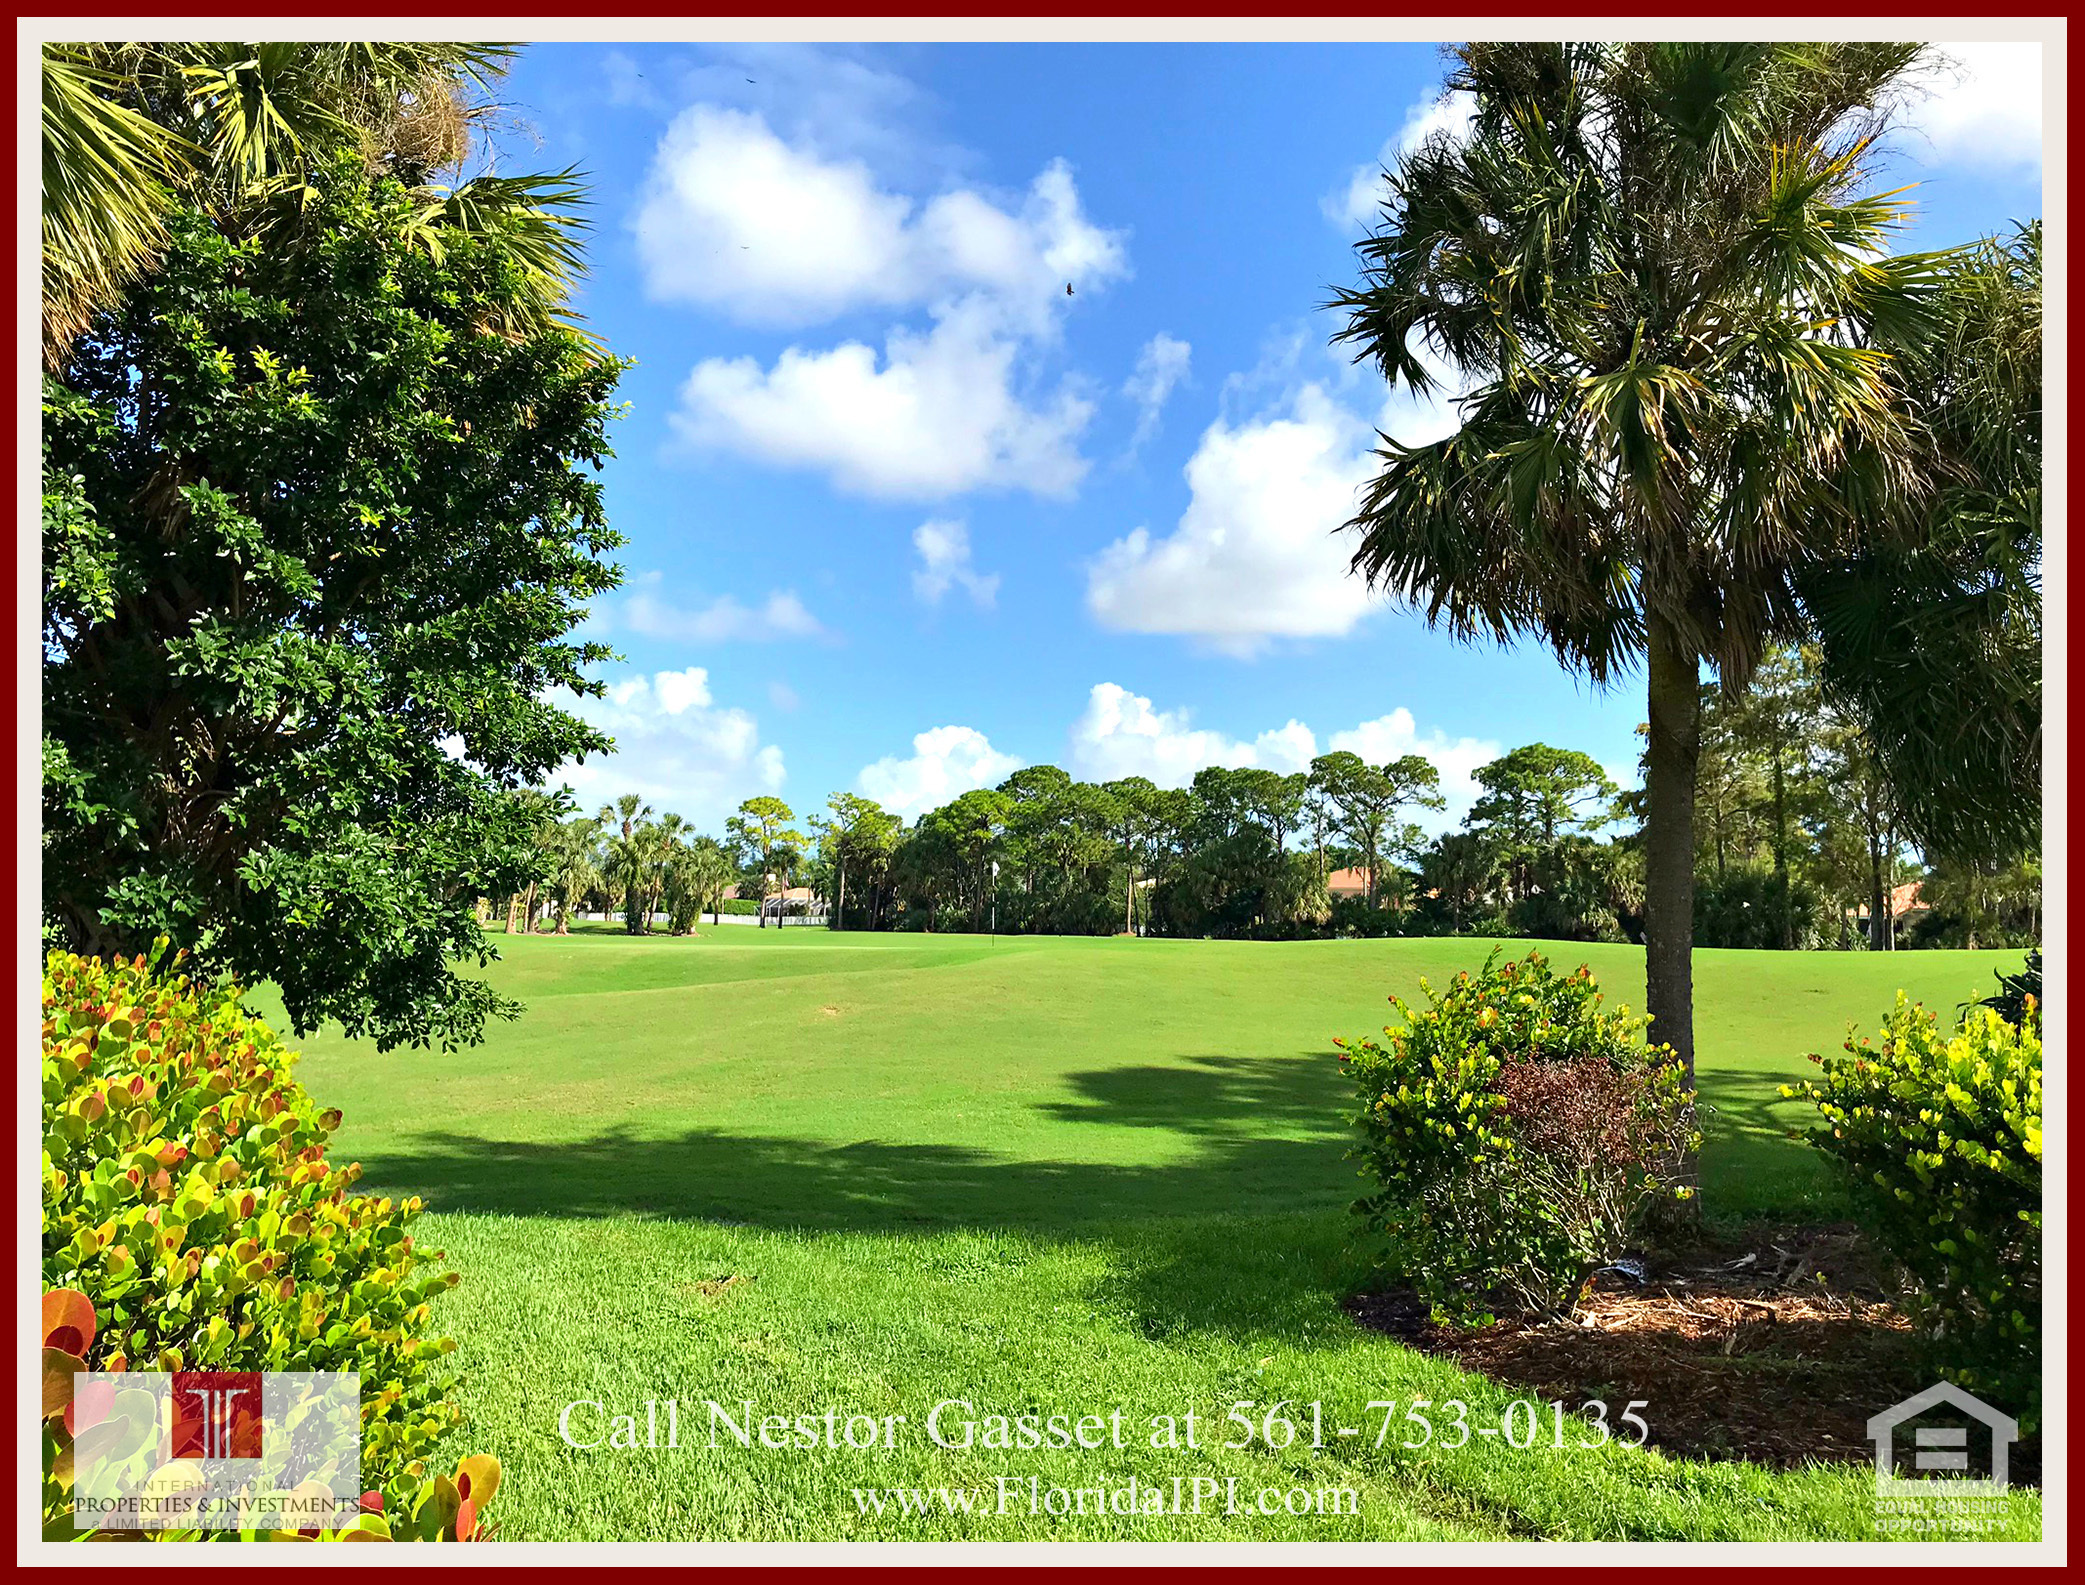 West Palm Beach Fl golf course community estate home for sale  - You can join the exclusive golf and country club membership to access the lavish community amenities of this home for sale in The Preserve at Ironhorse.